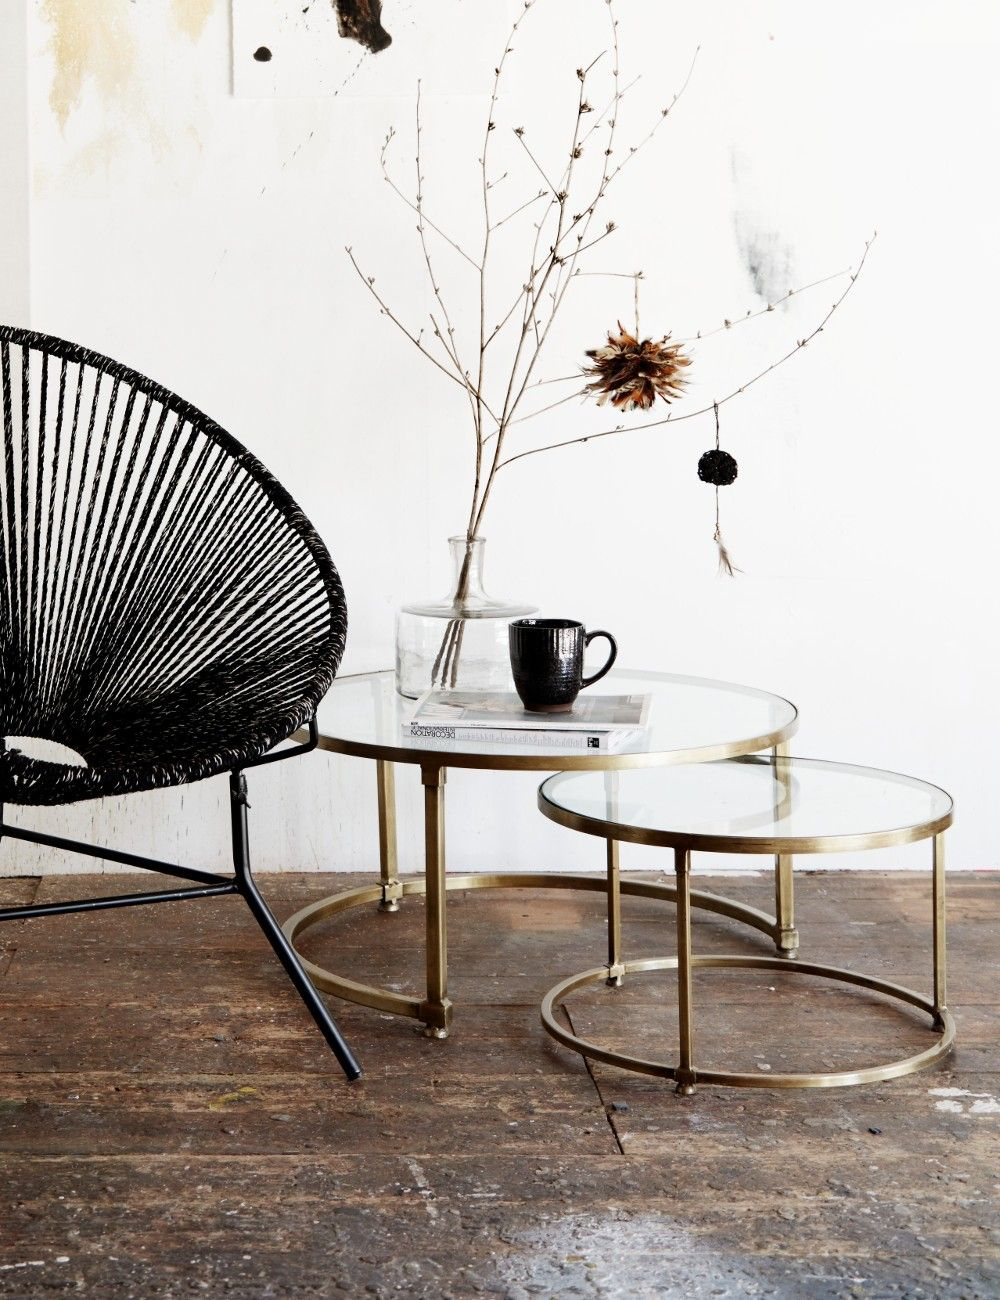 Buy The Stunning Coco Nesting Round Glass Top Coffee Table Stacking Set  With Beautiful Brass Frames Here At Rose U0026 Grey, And Enjoy FREE UK Delivery.